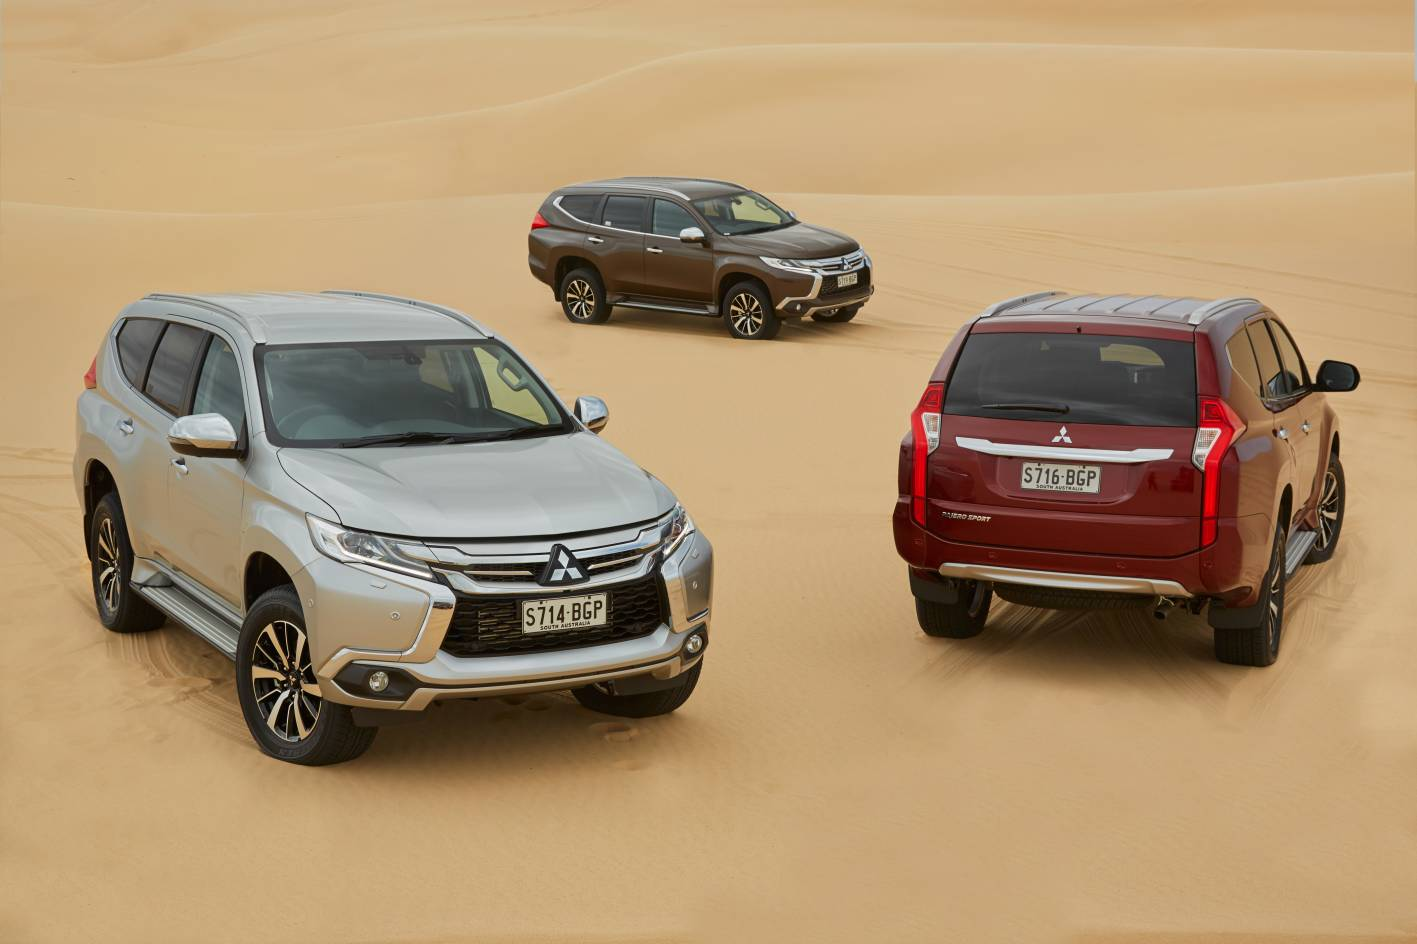 Mitsubishi Cars - News: All-New Pajero Sport launched from ...